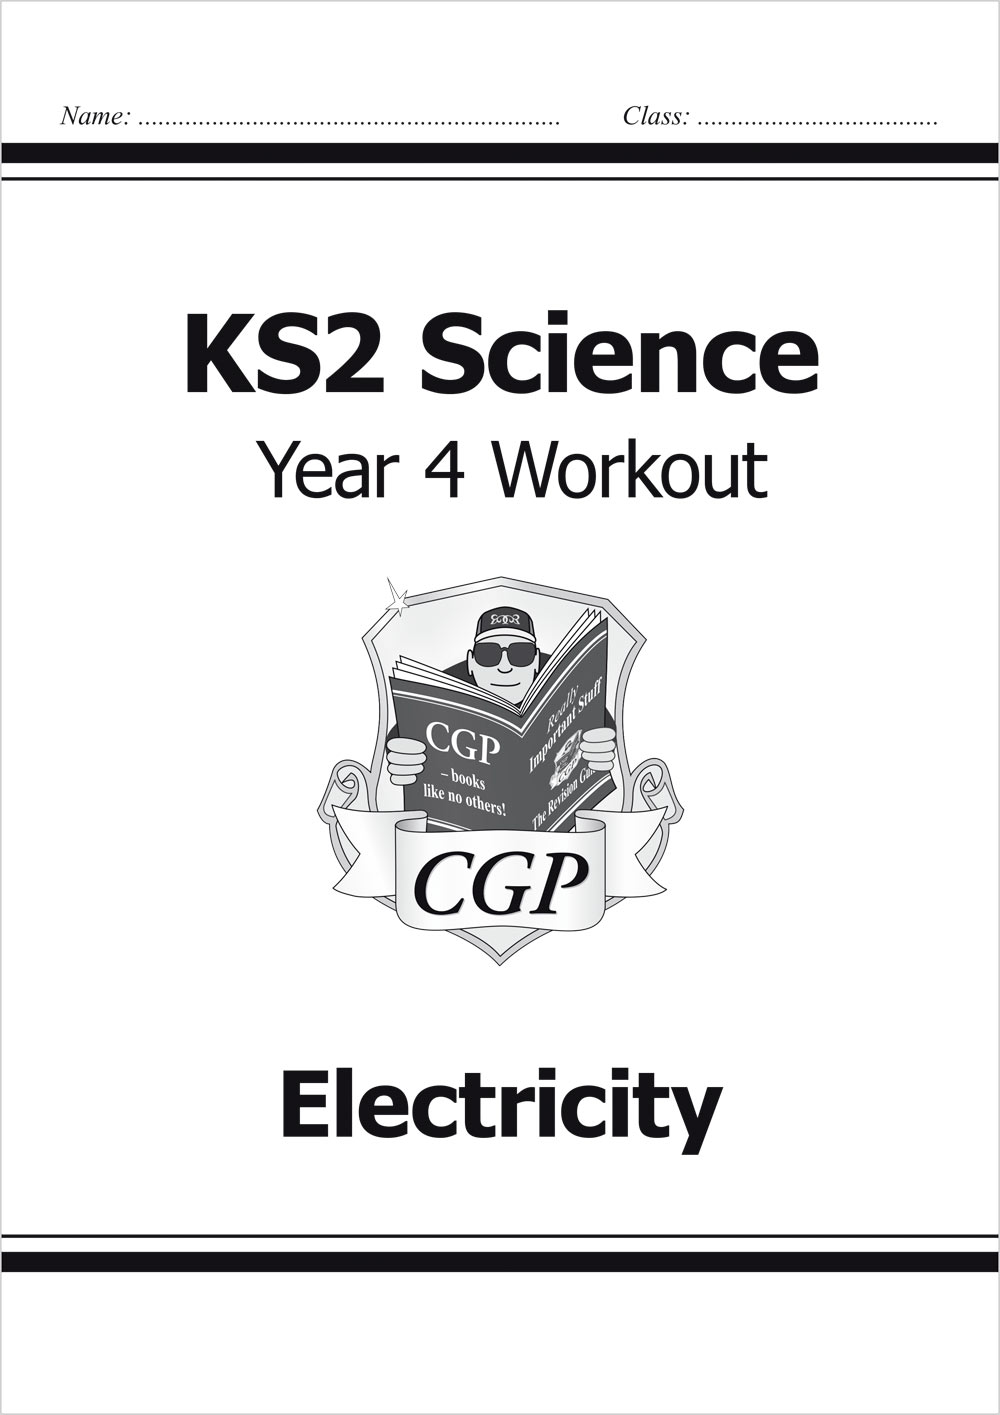 S4E22 - KS2 Science Year Four Workout: Electricity